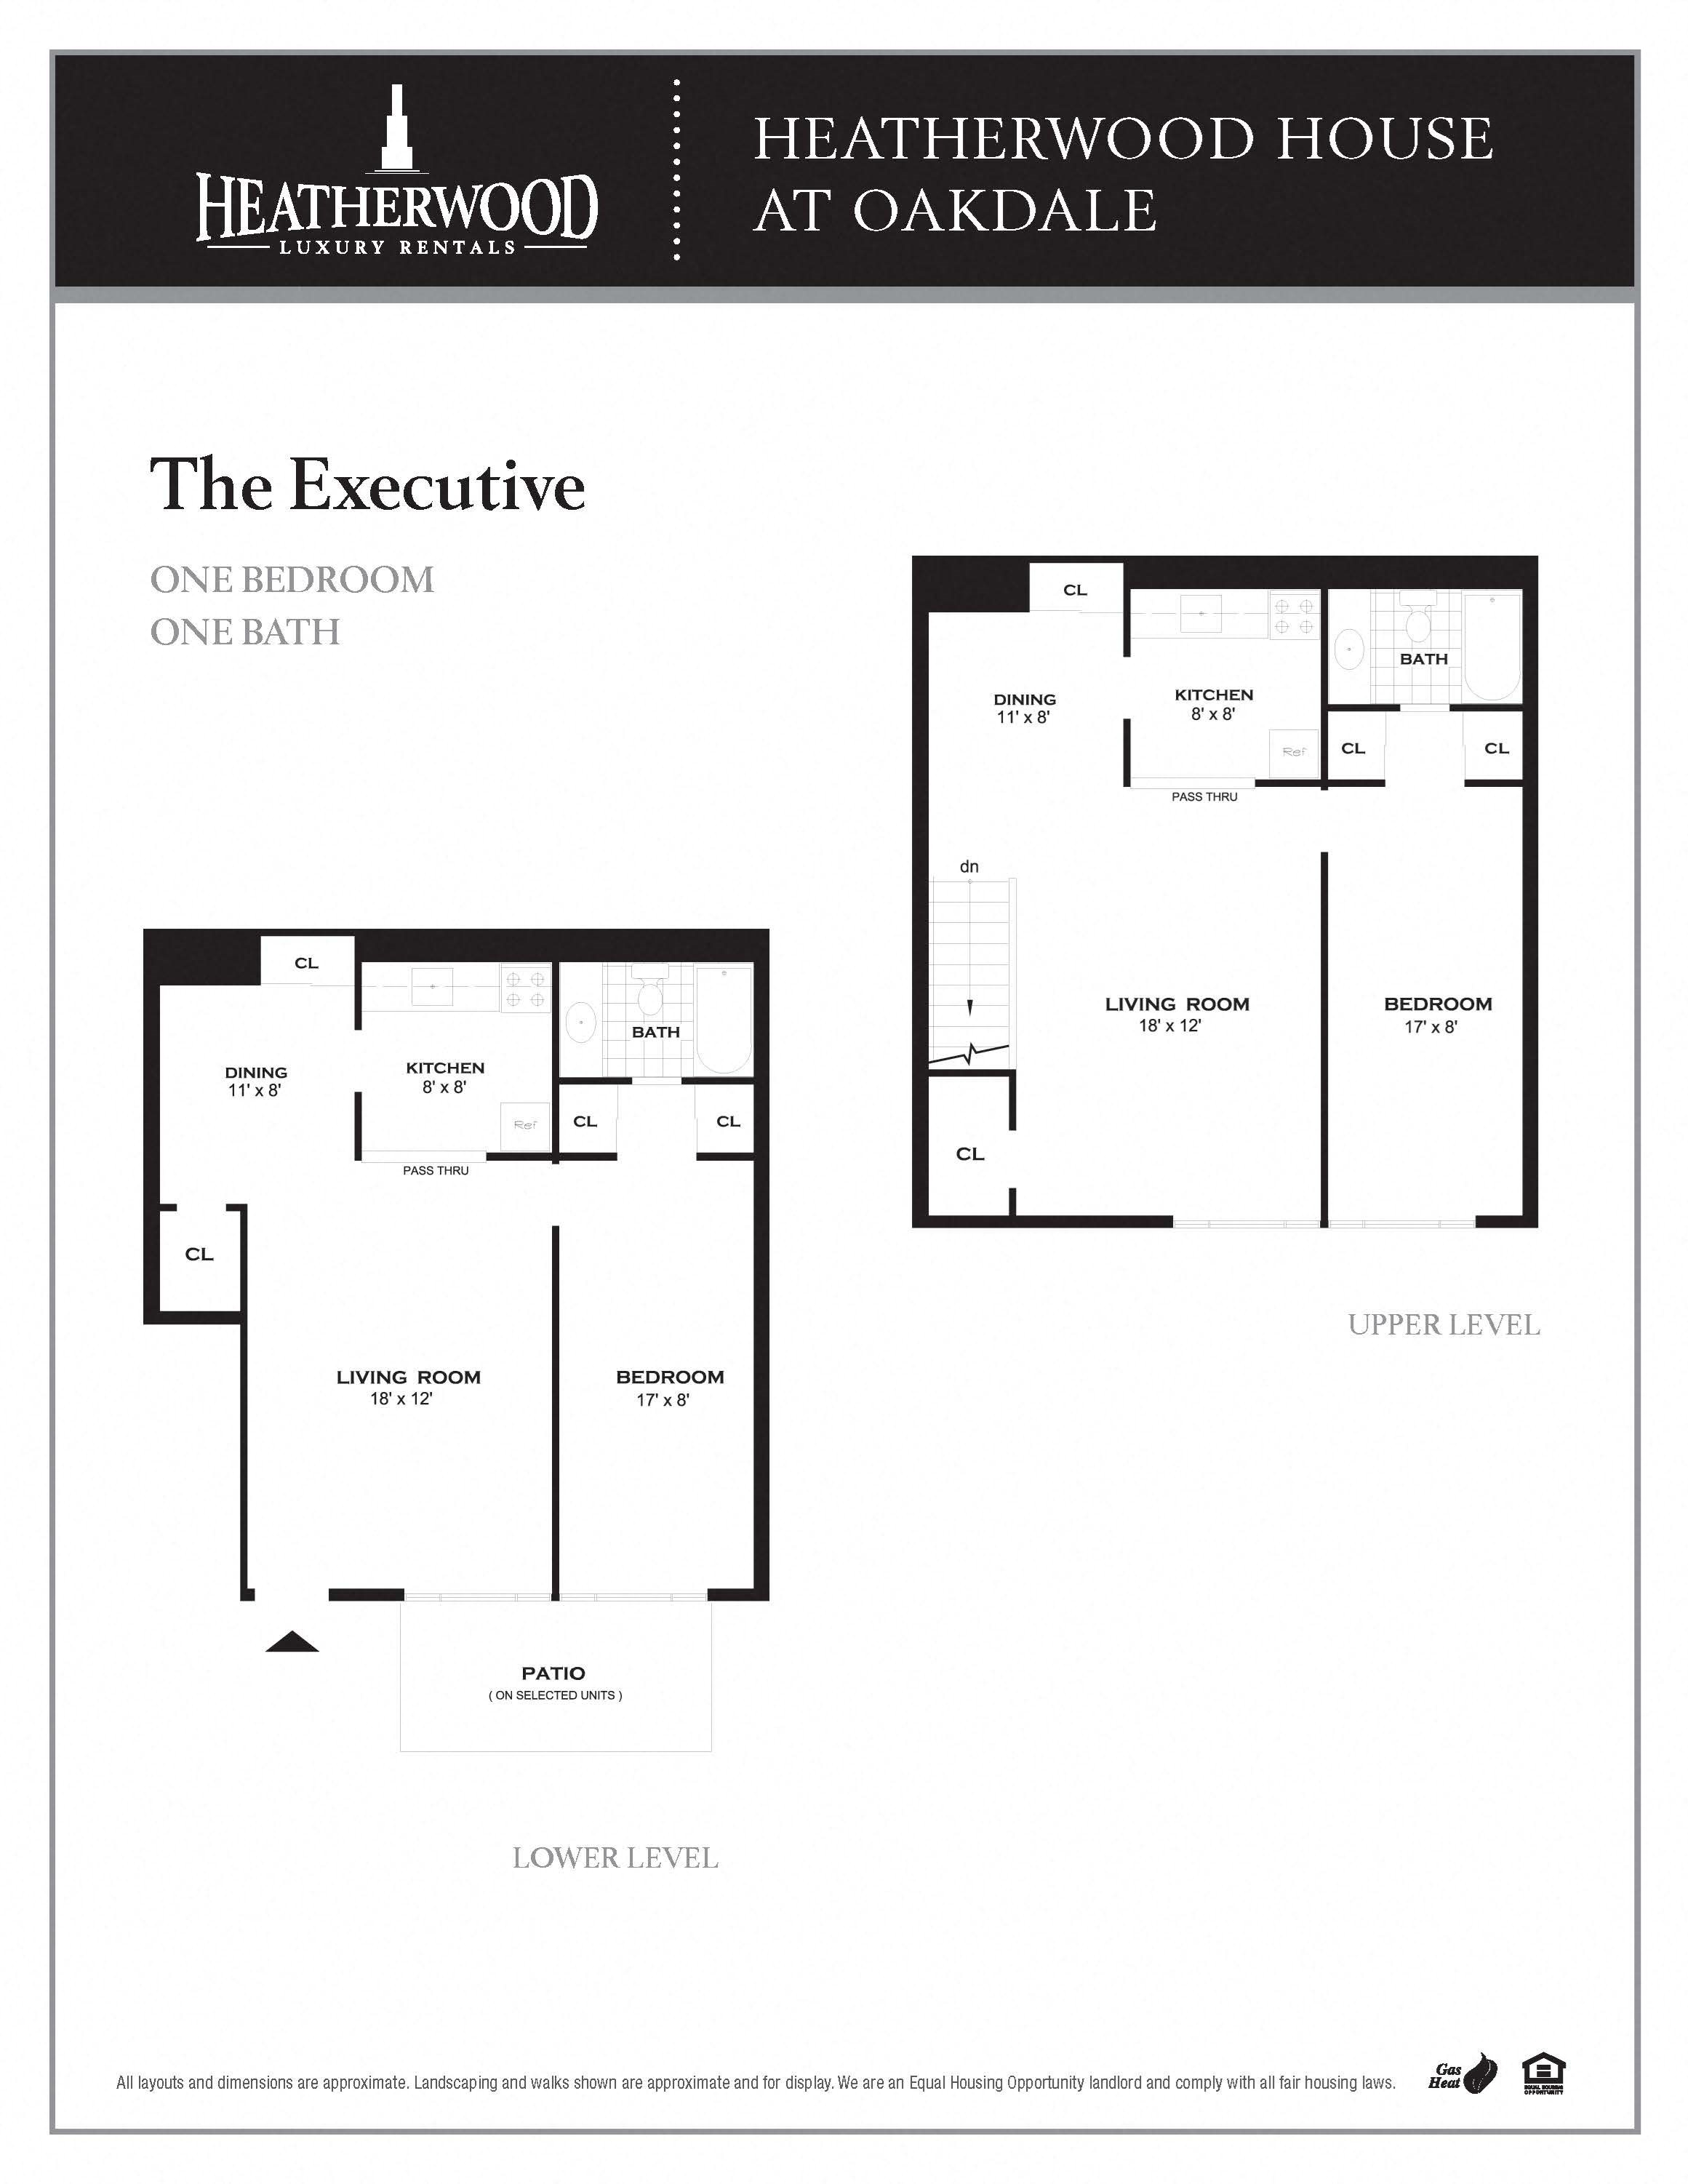 Heatherwood House at Oakdale | Oakdale, NY| Floor Plans ... on blueprints for houses with open floor plans, mansion plans, i house architecture, i house home, home design floor plans, home builders floor plans, roof plans, split level home floor plans,